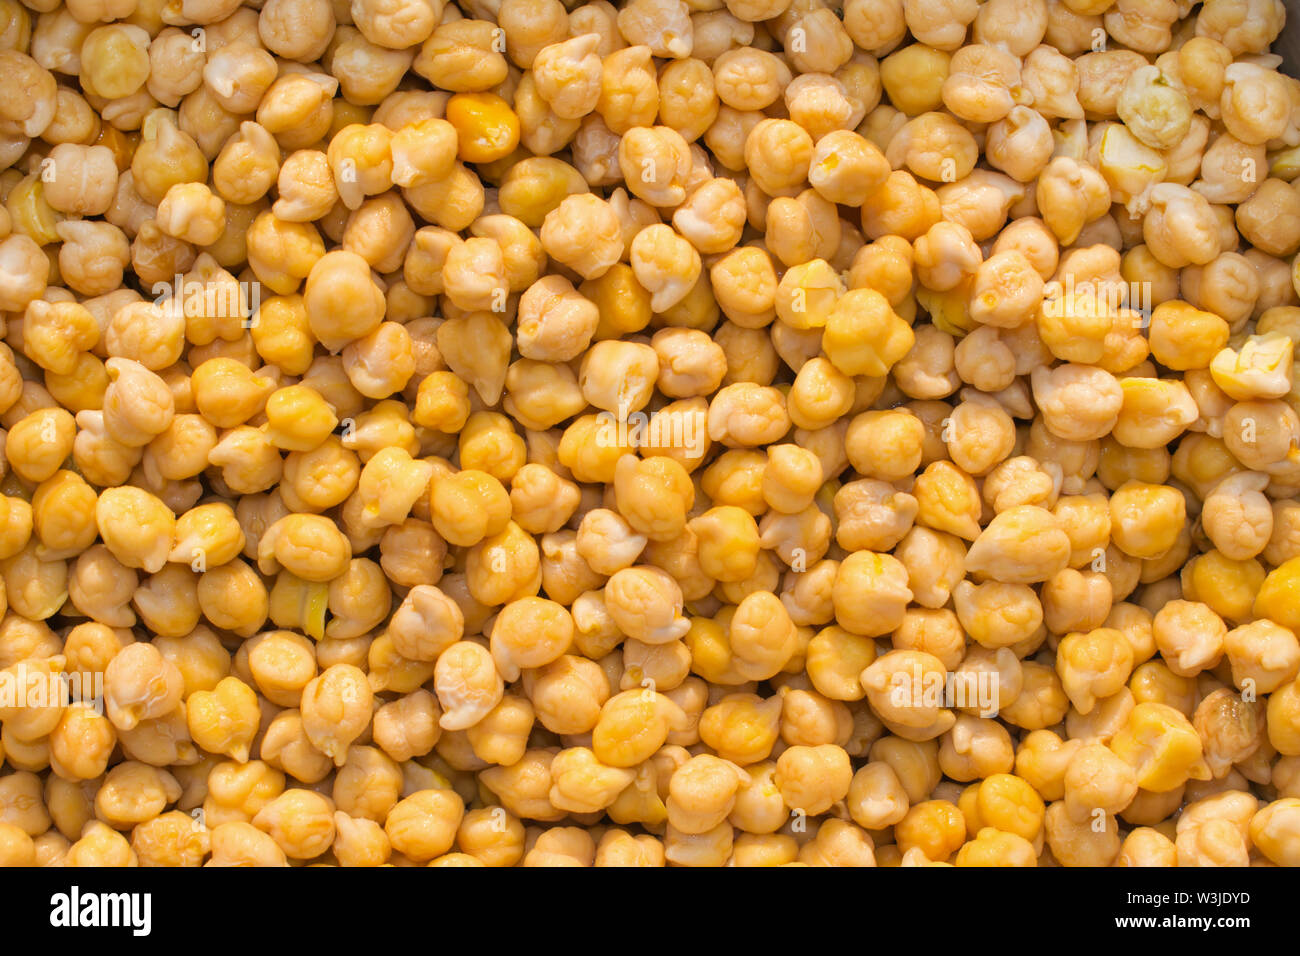 close up of pile of yellow chick peas,pile of cooked kabuli chick peas. Stock Photo